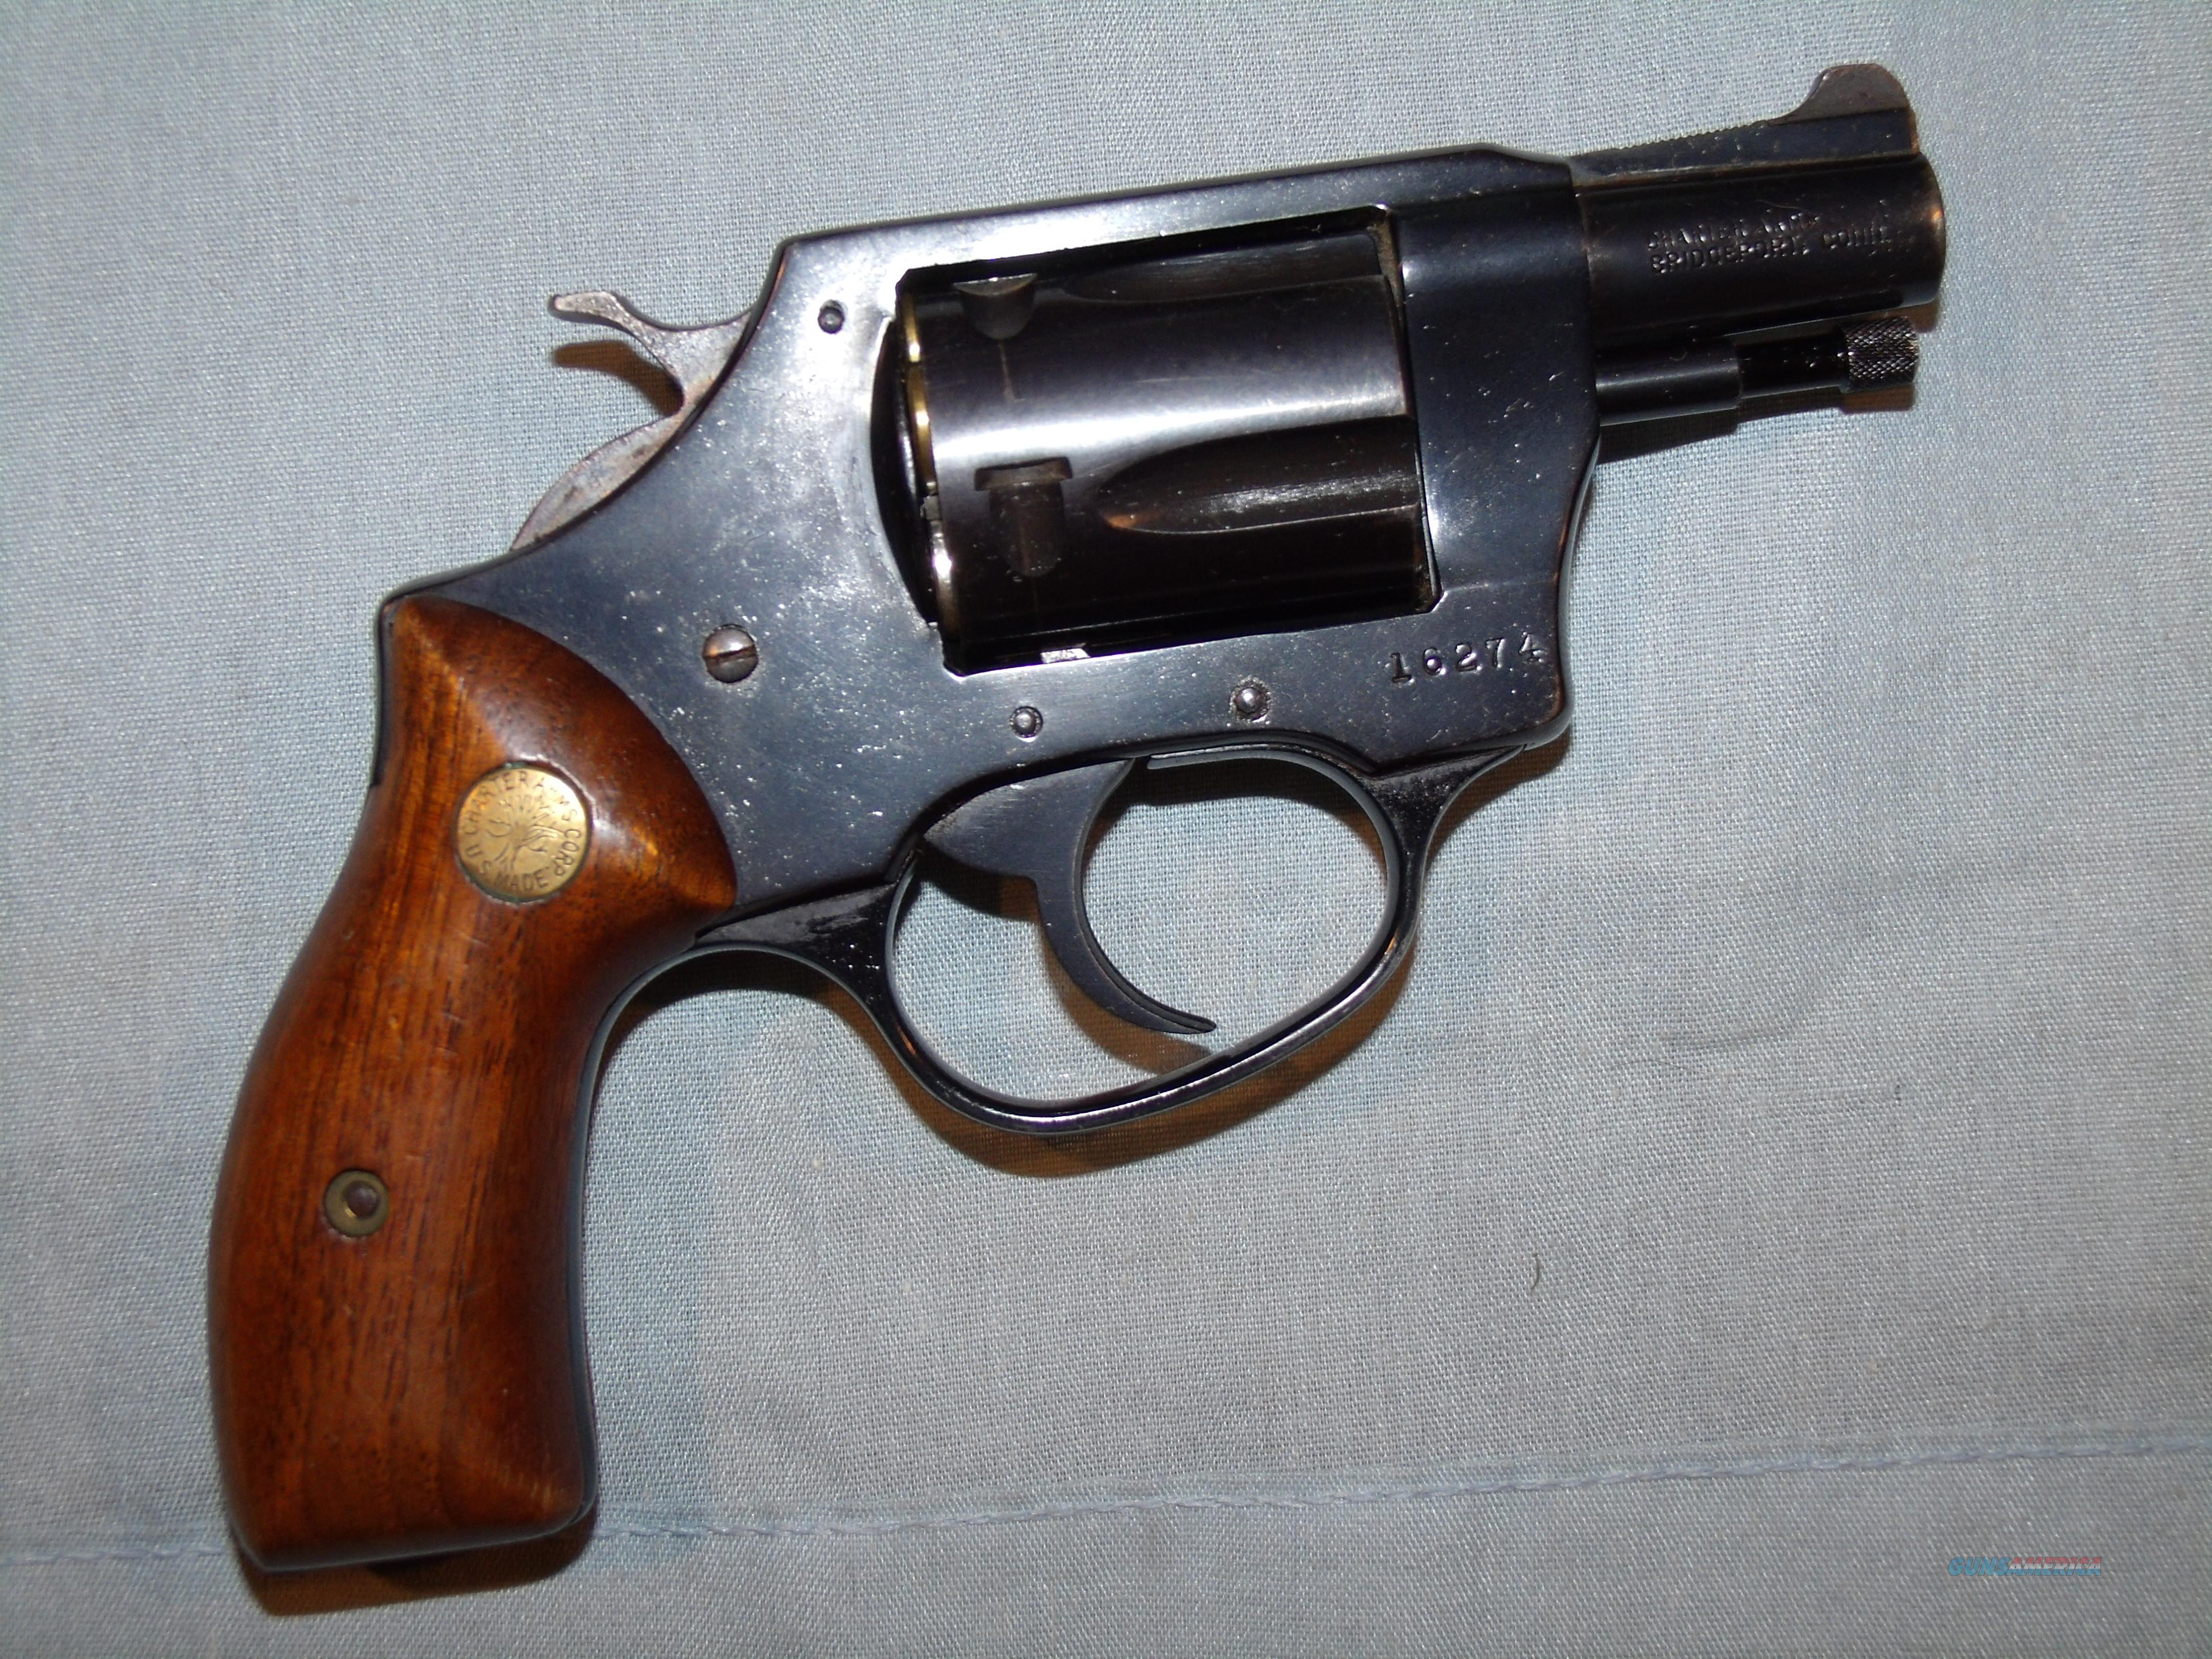 CHARTER ARMS UNDERCOVER .38SPECIAL  Guns > Pistols > Charter Arms Revolvers